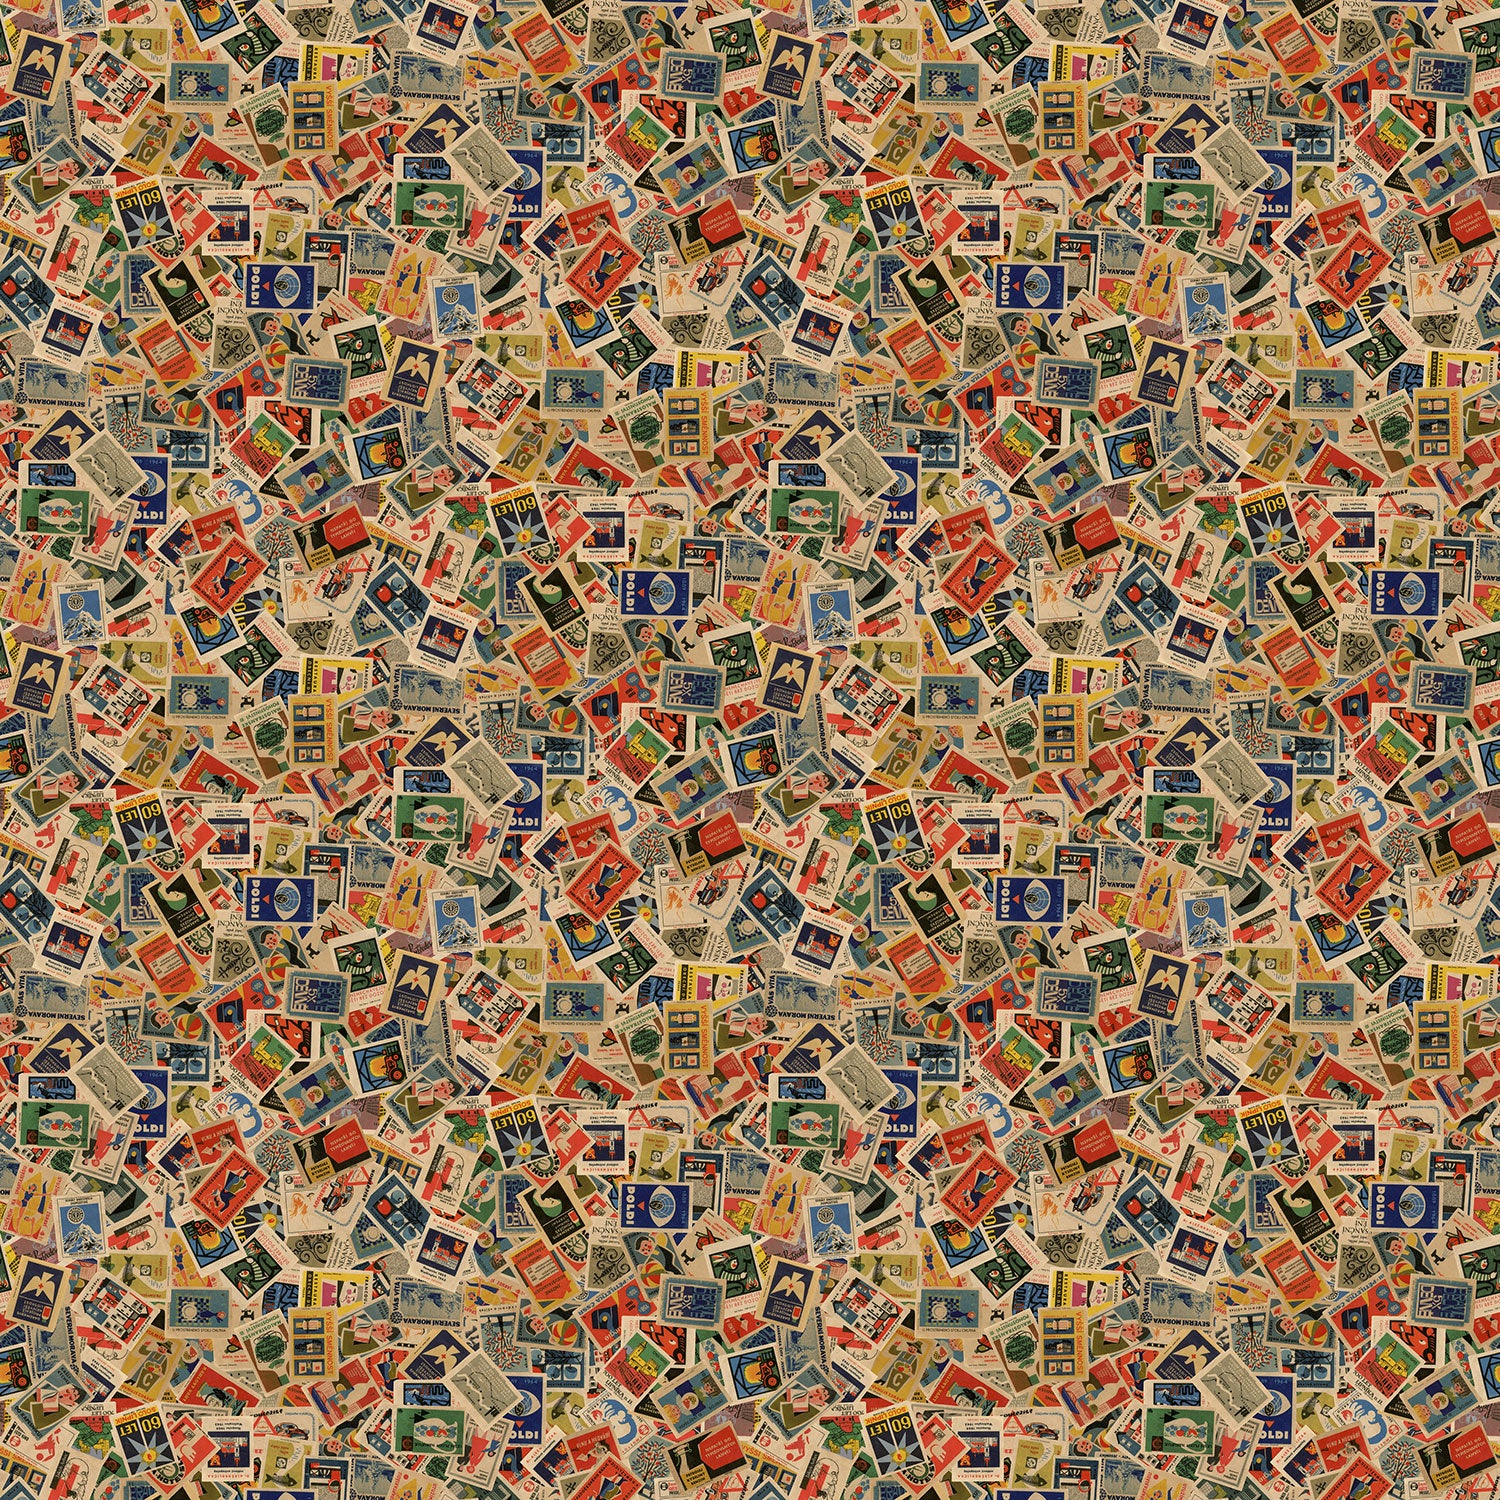 Mental Bloc wallpaper, an eccentric feature wallpaper featuring vintage matchboxes